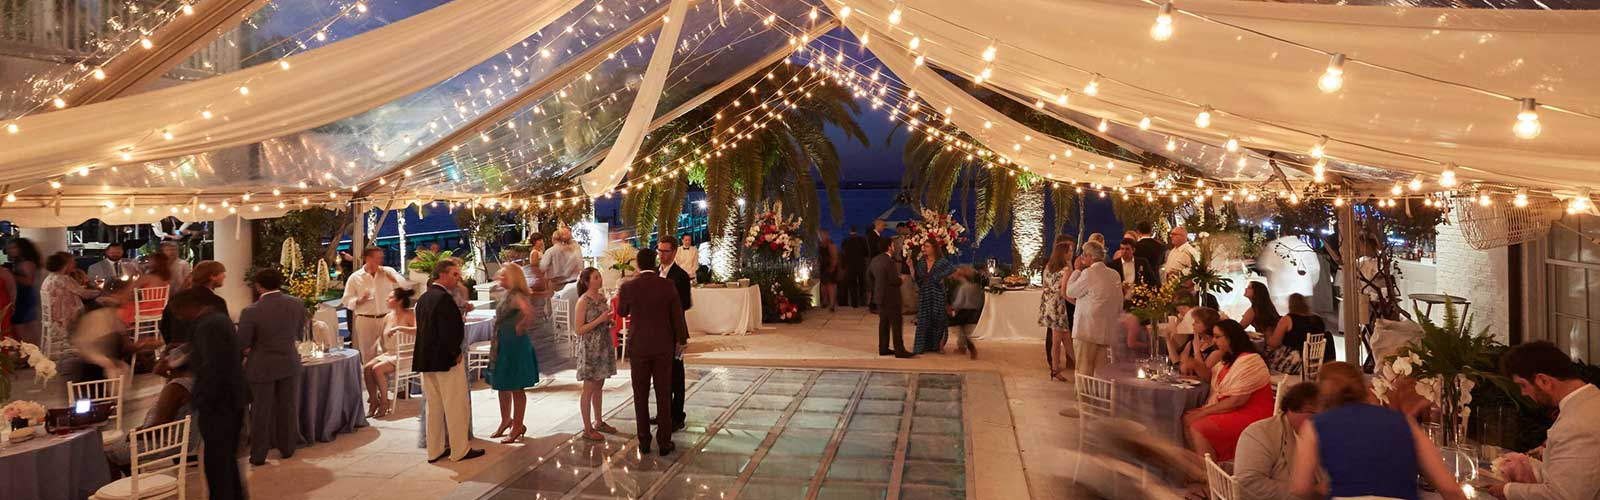 Stupendous Event Rentals In Mobile Al And The Greater Gulf Coast Interior Design Ideas Gentotryabchikinfo